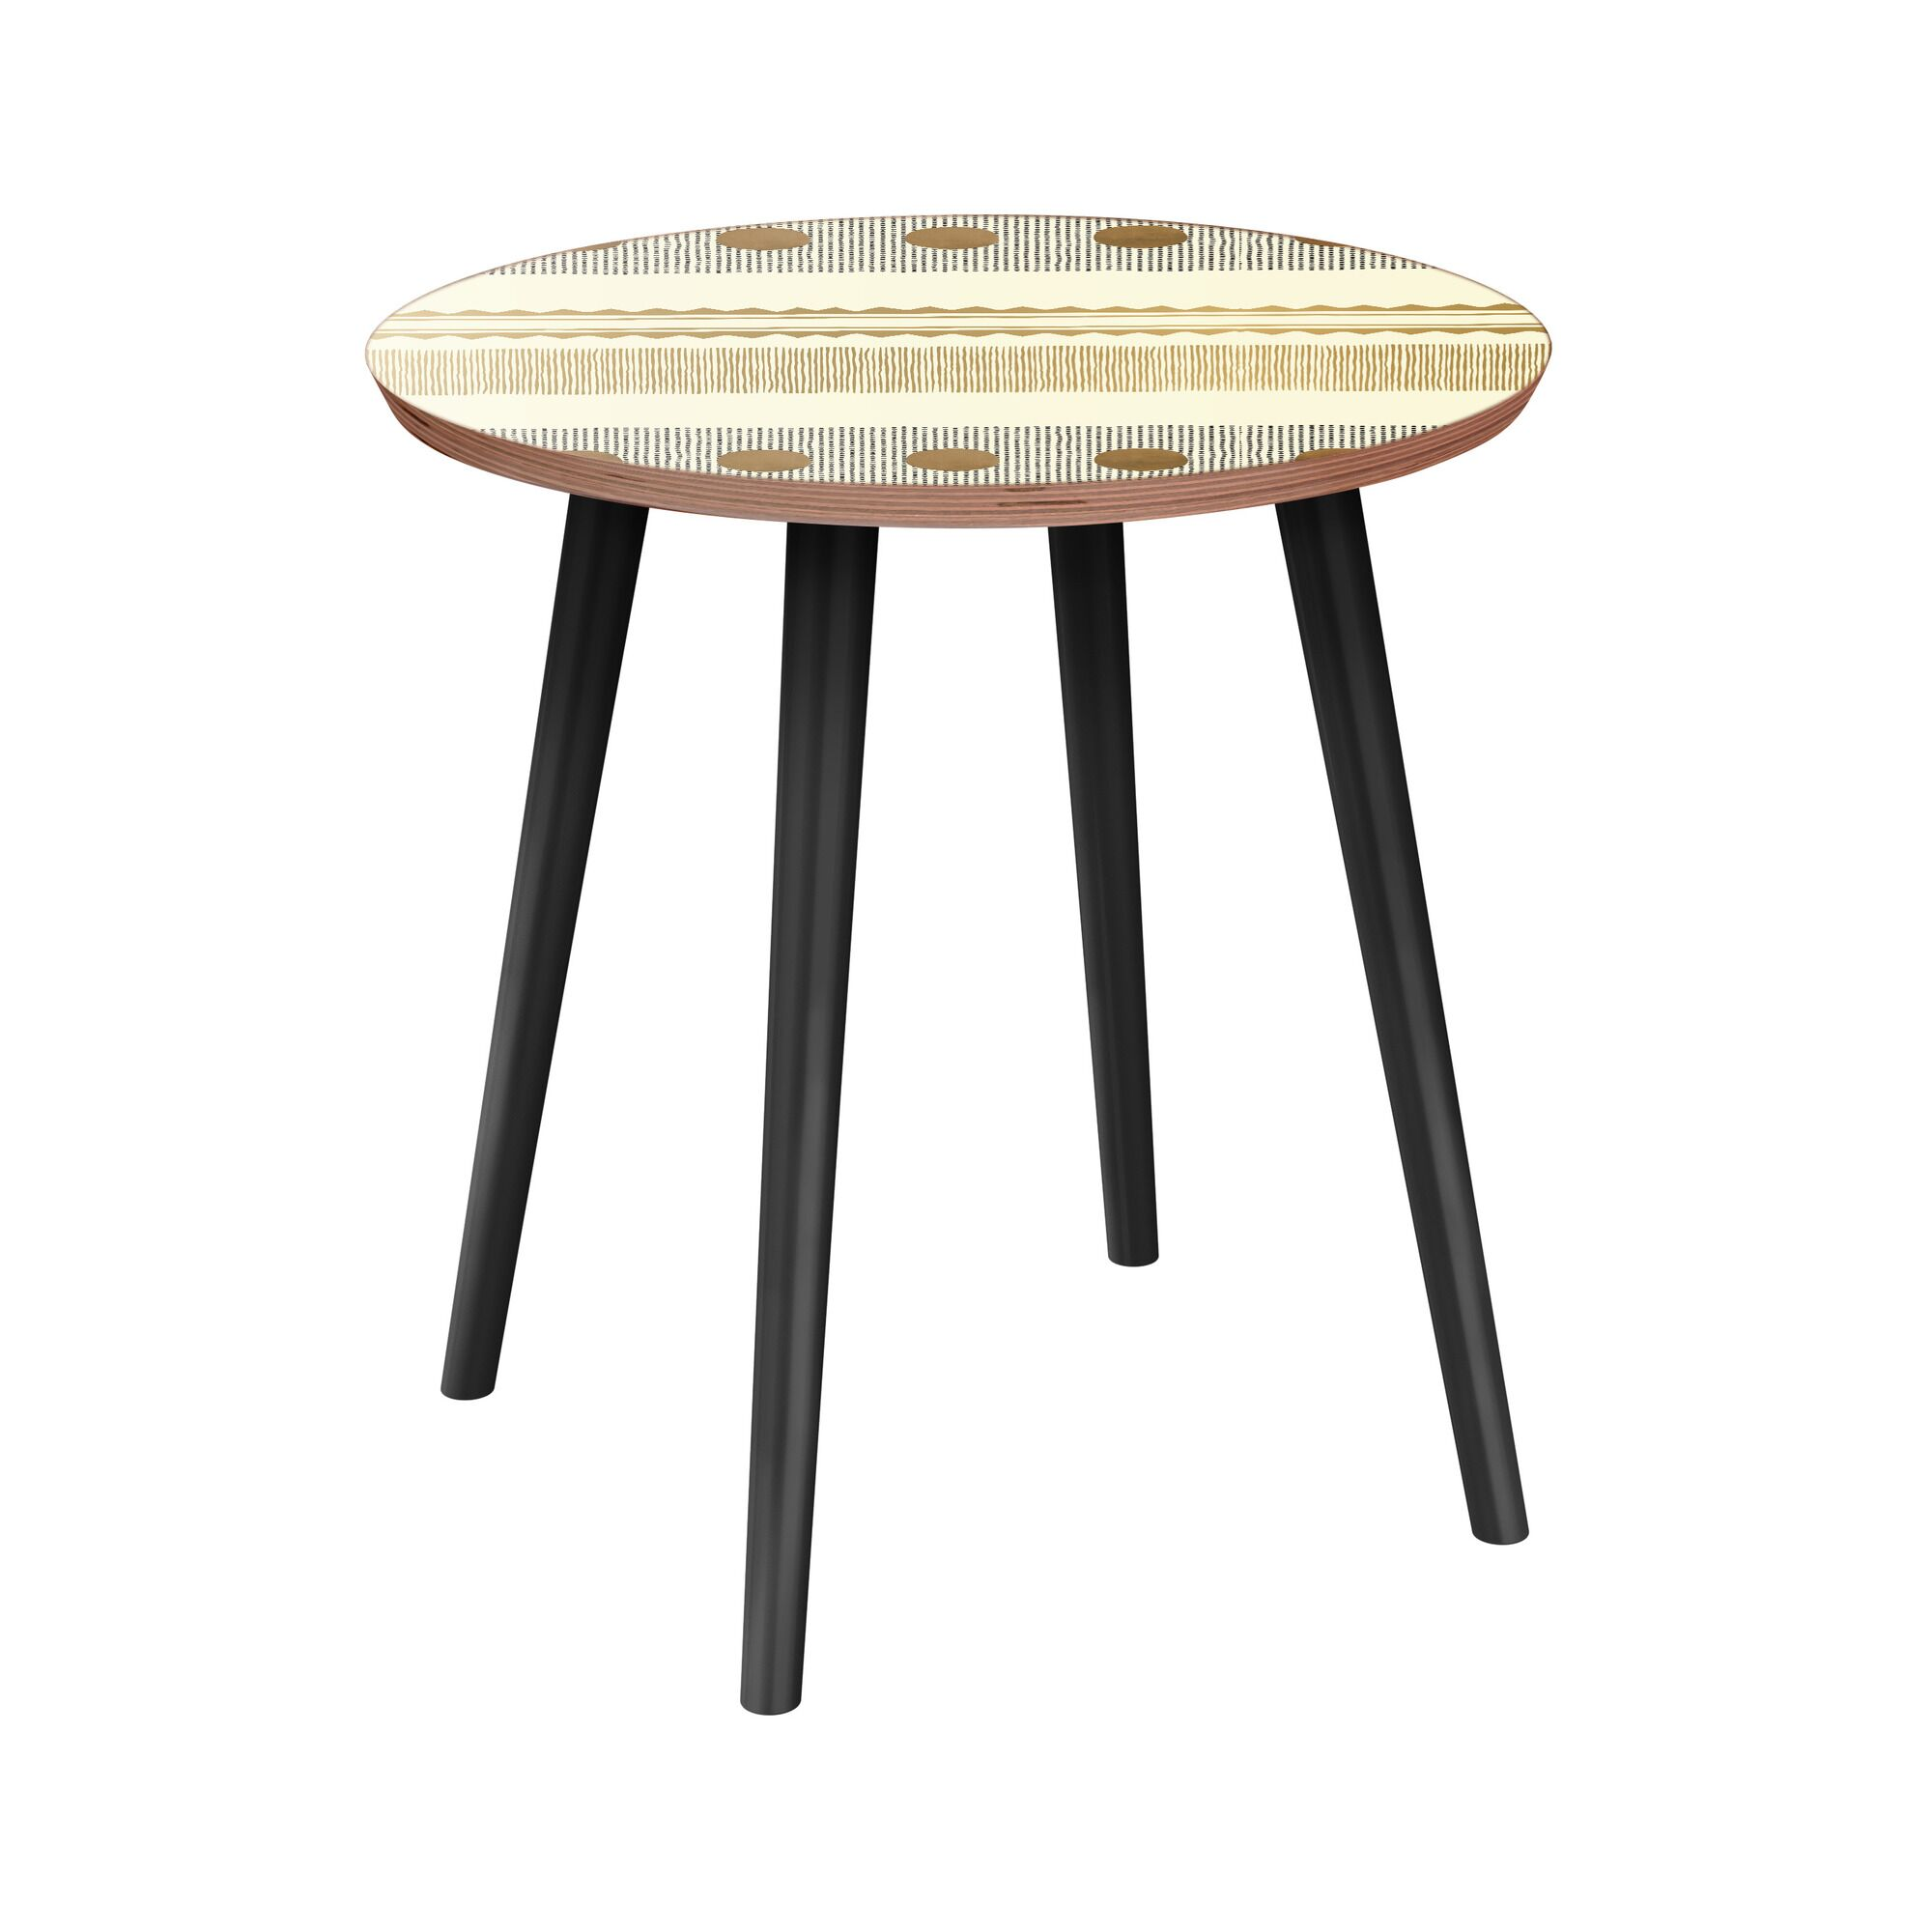 Honore End Table Table Base Color: Black, Table Top Color: Walnut